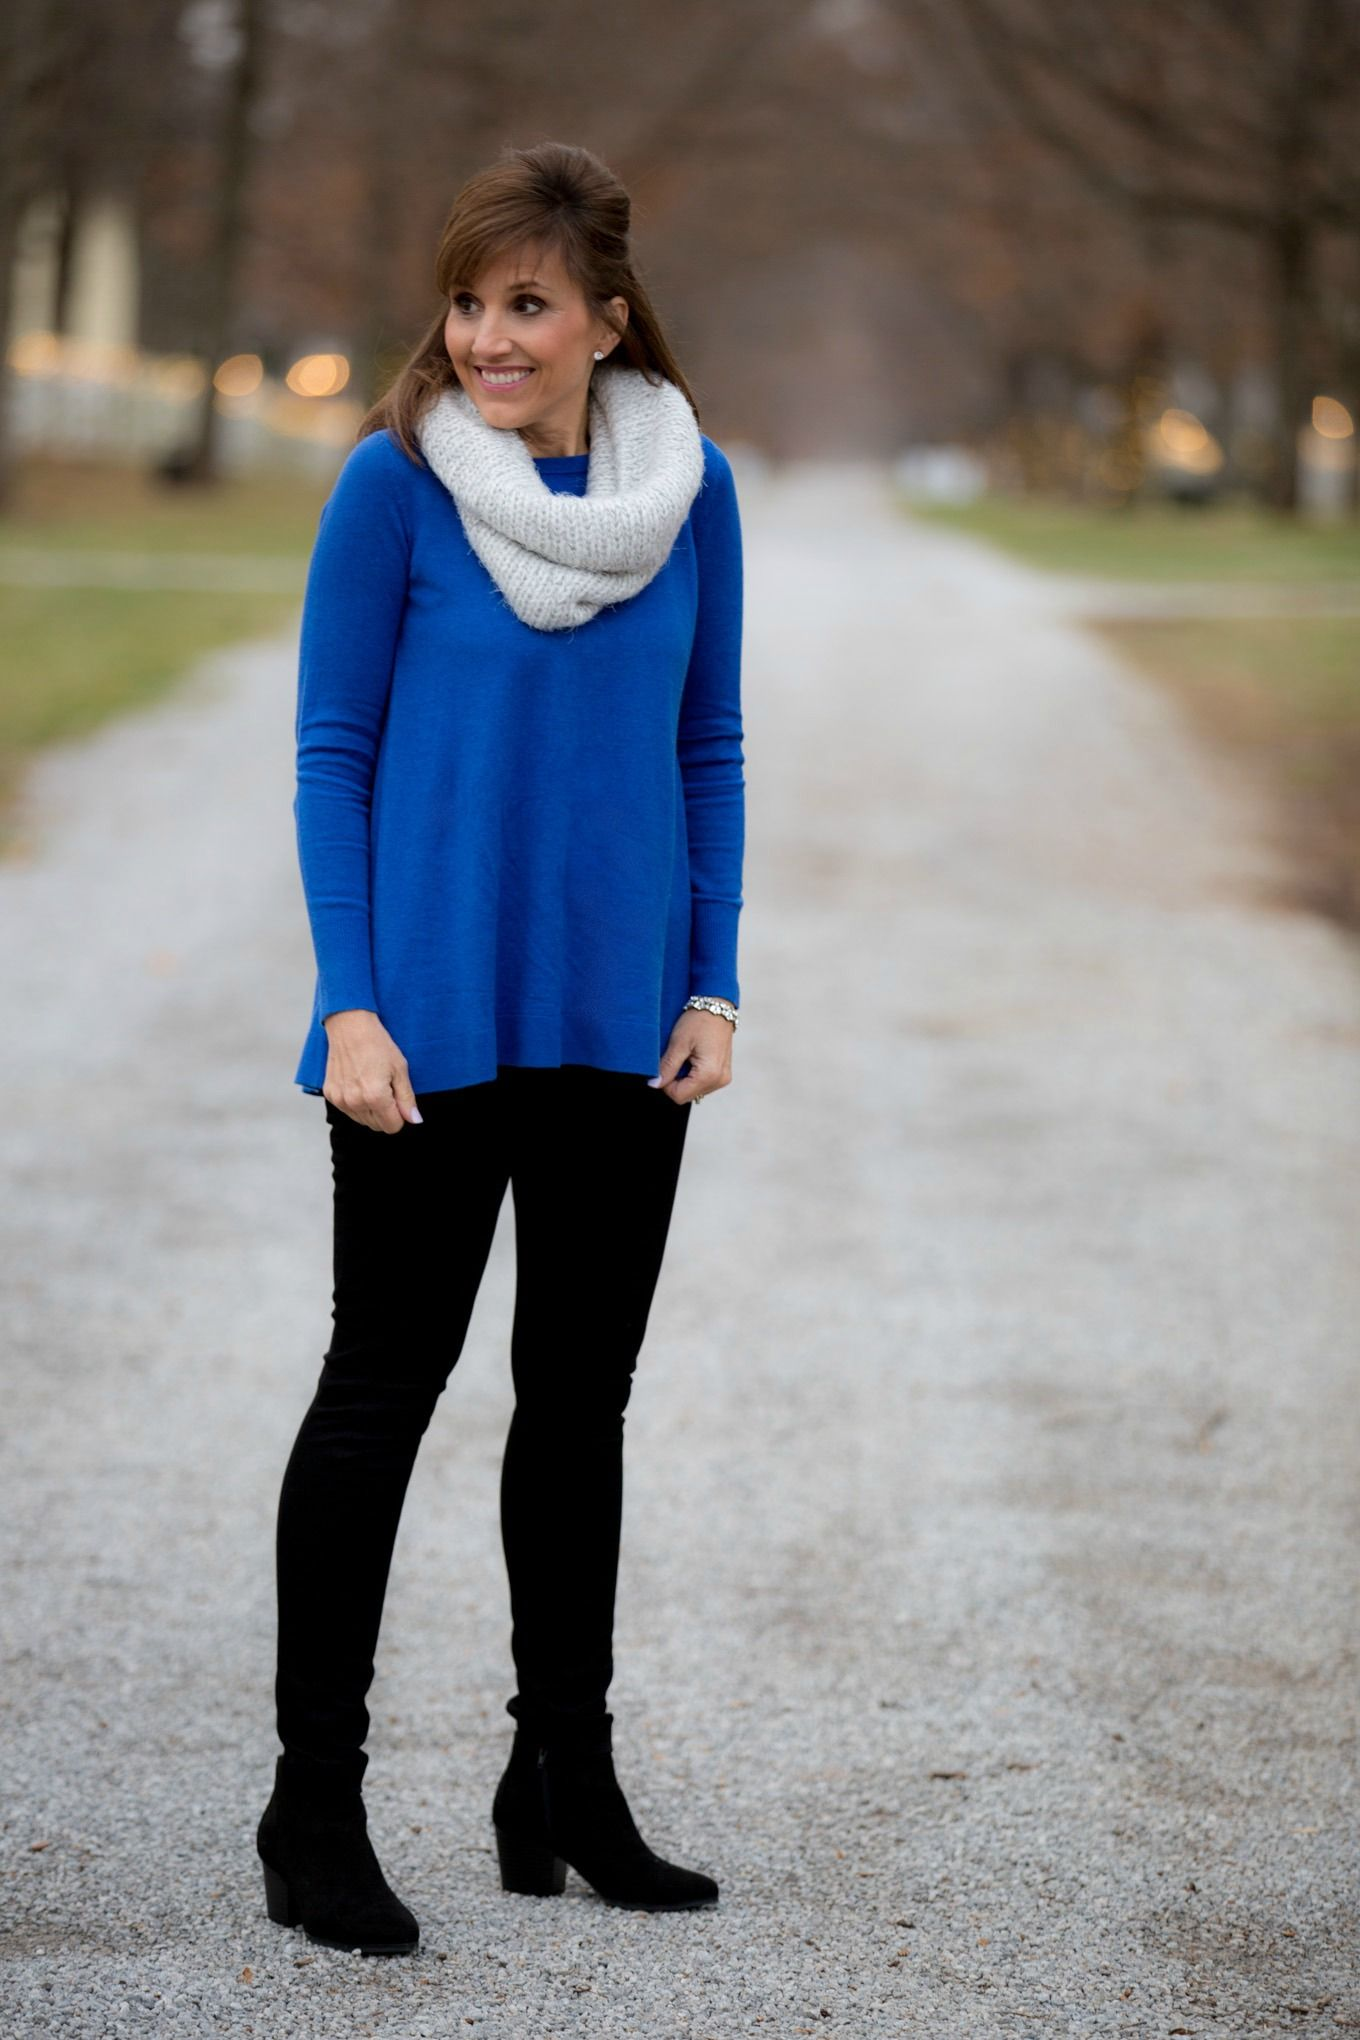 Royal Blue Sweater from Loft-Winter Fashion | Royal blue sweater ...